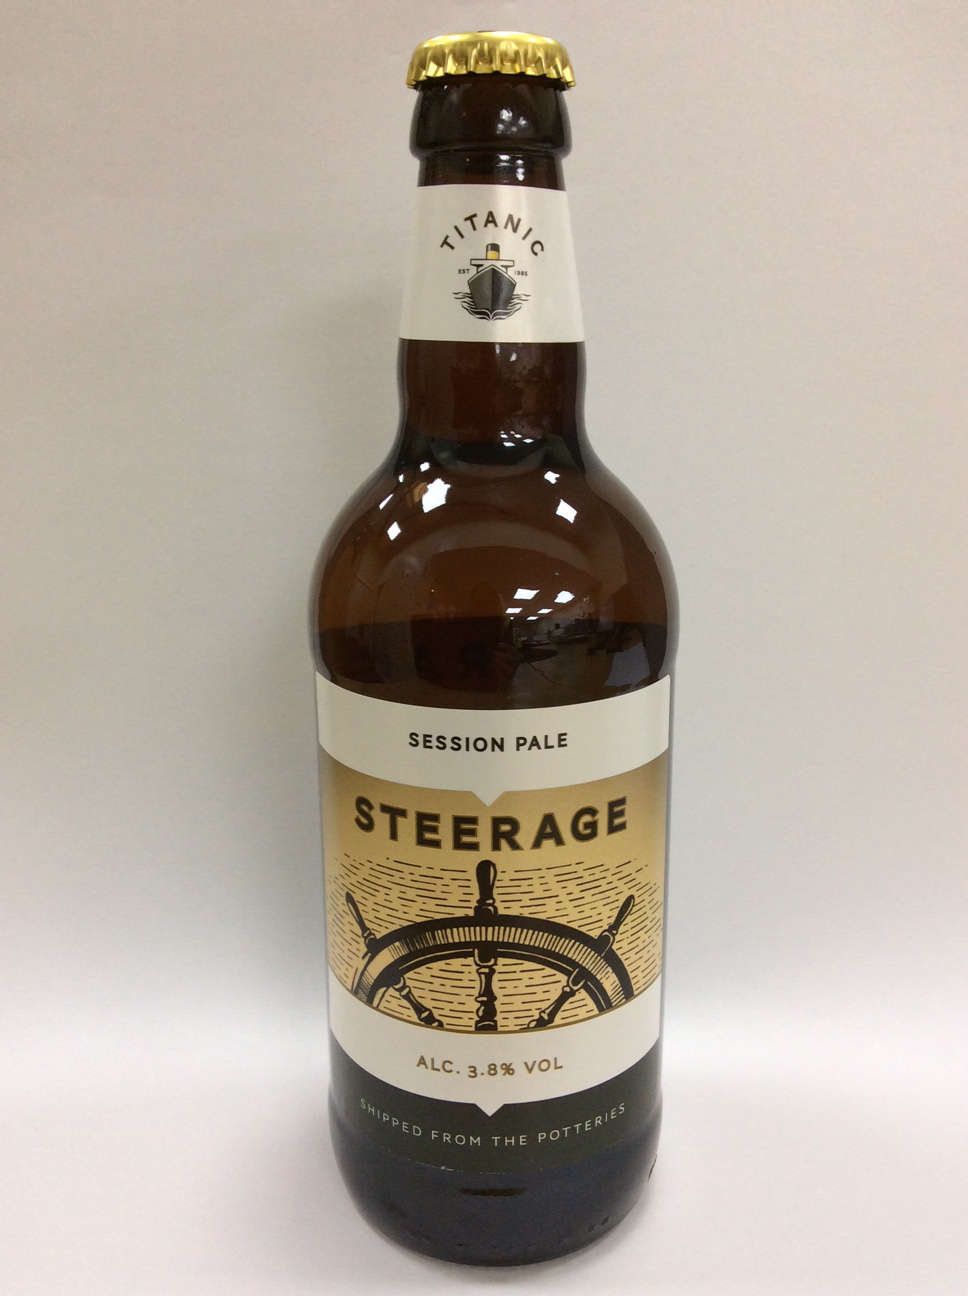 Steerage bottle